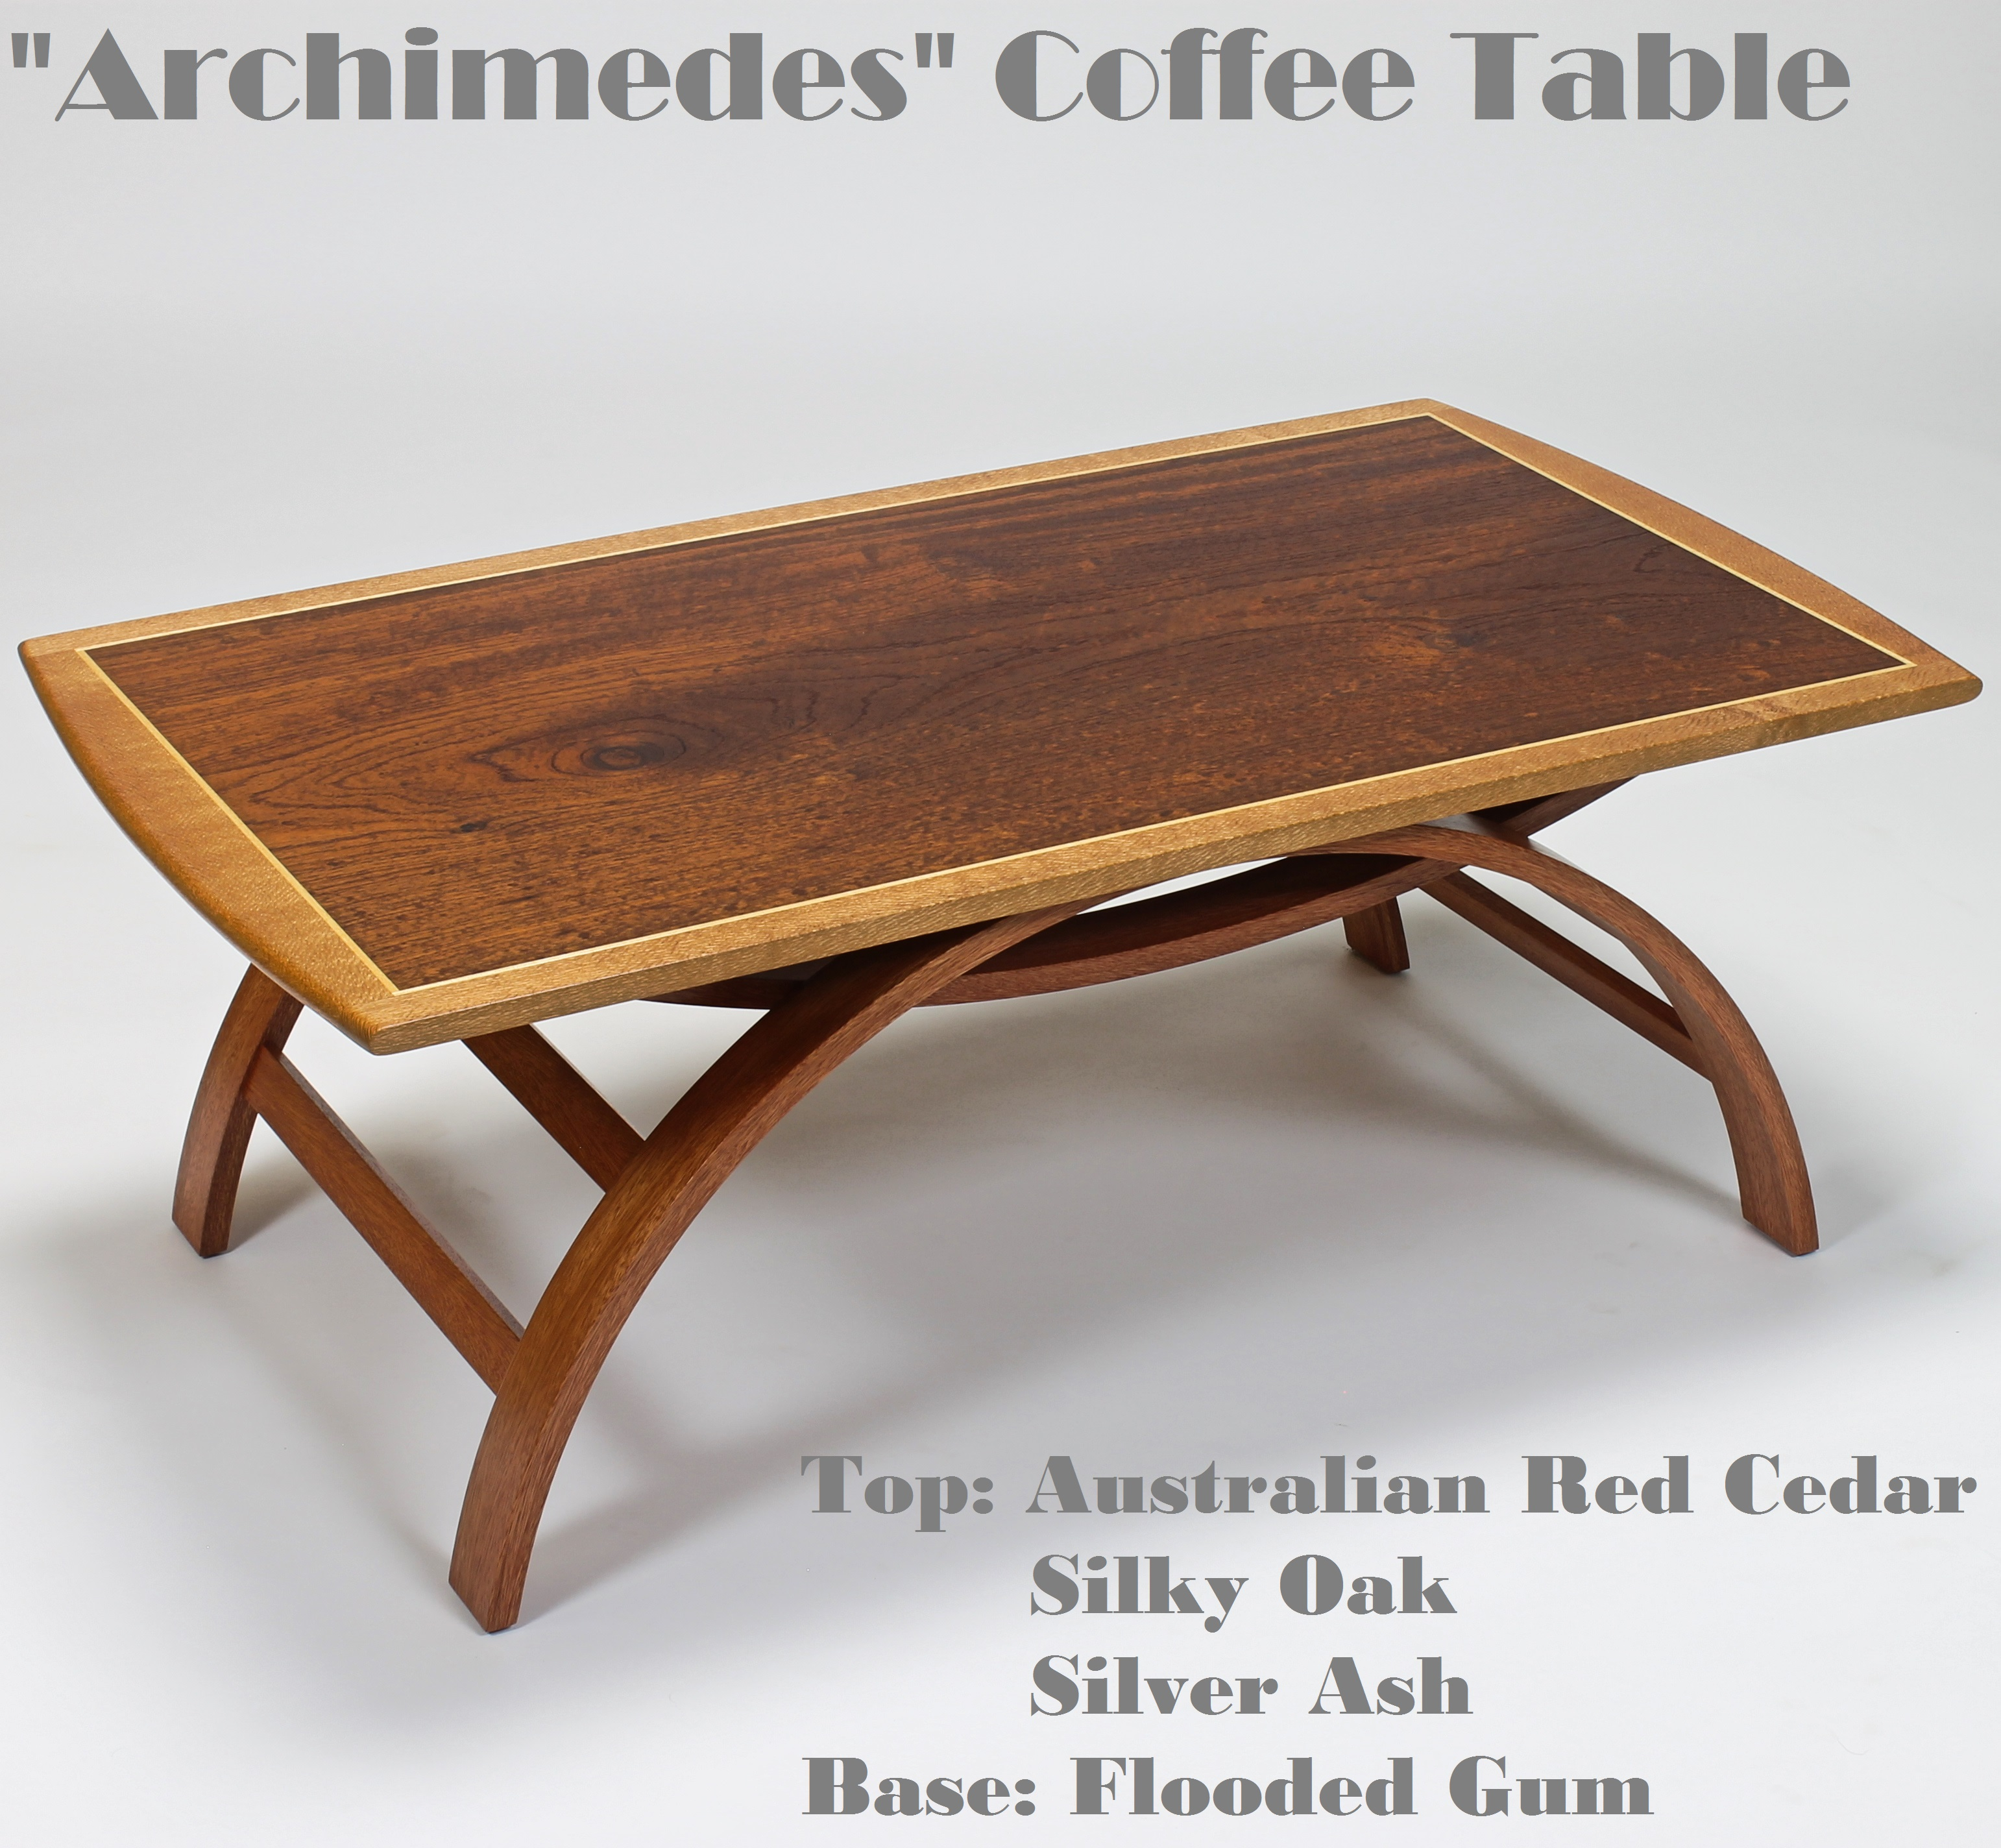 Archimedes Coffee Table 2 Website